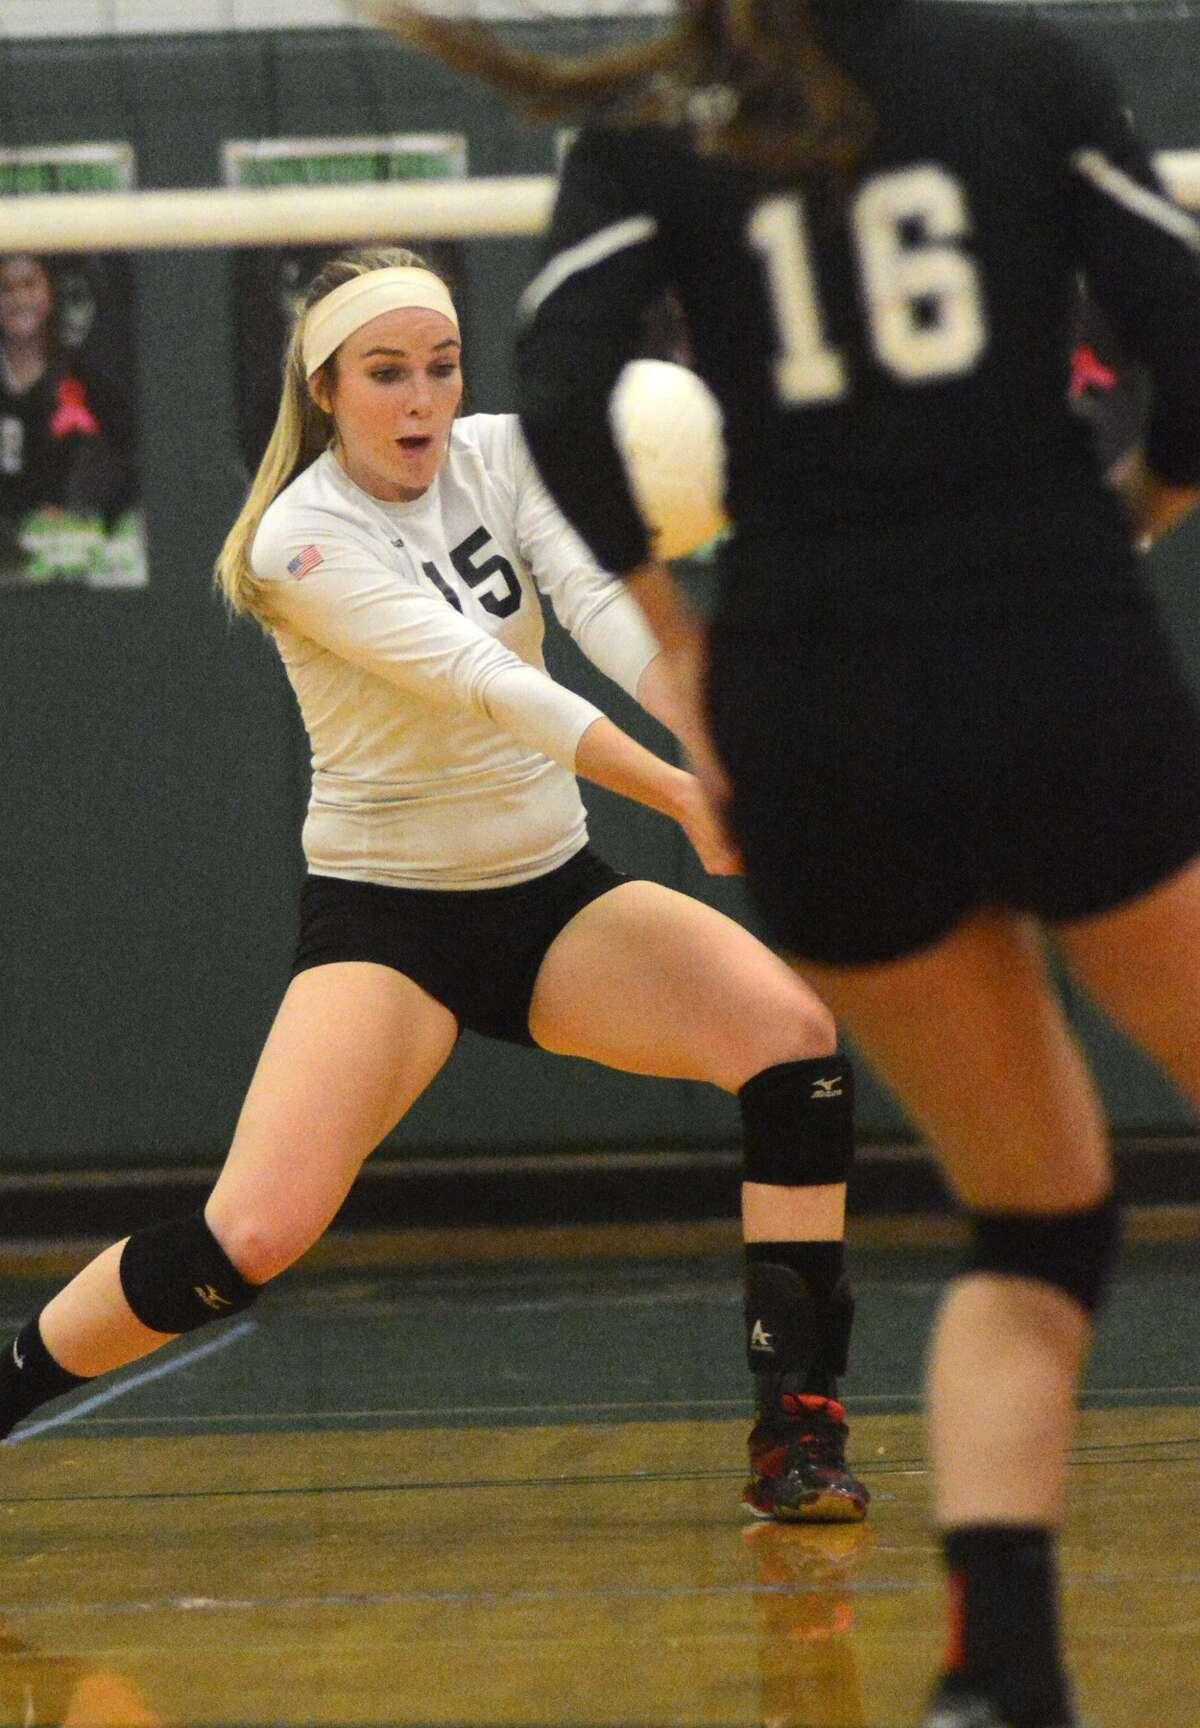 Porter senior Libero Jade Strother (15) makes a play against Kingwood Park and junior Jessie Feuerbacher (16) during their match at Kingwood Park High School on Oct. 24th.